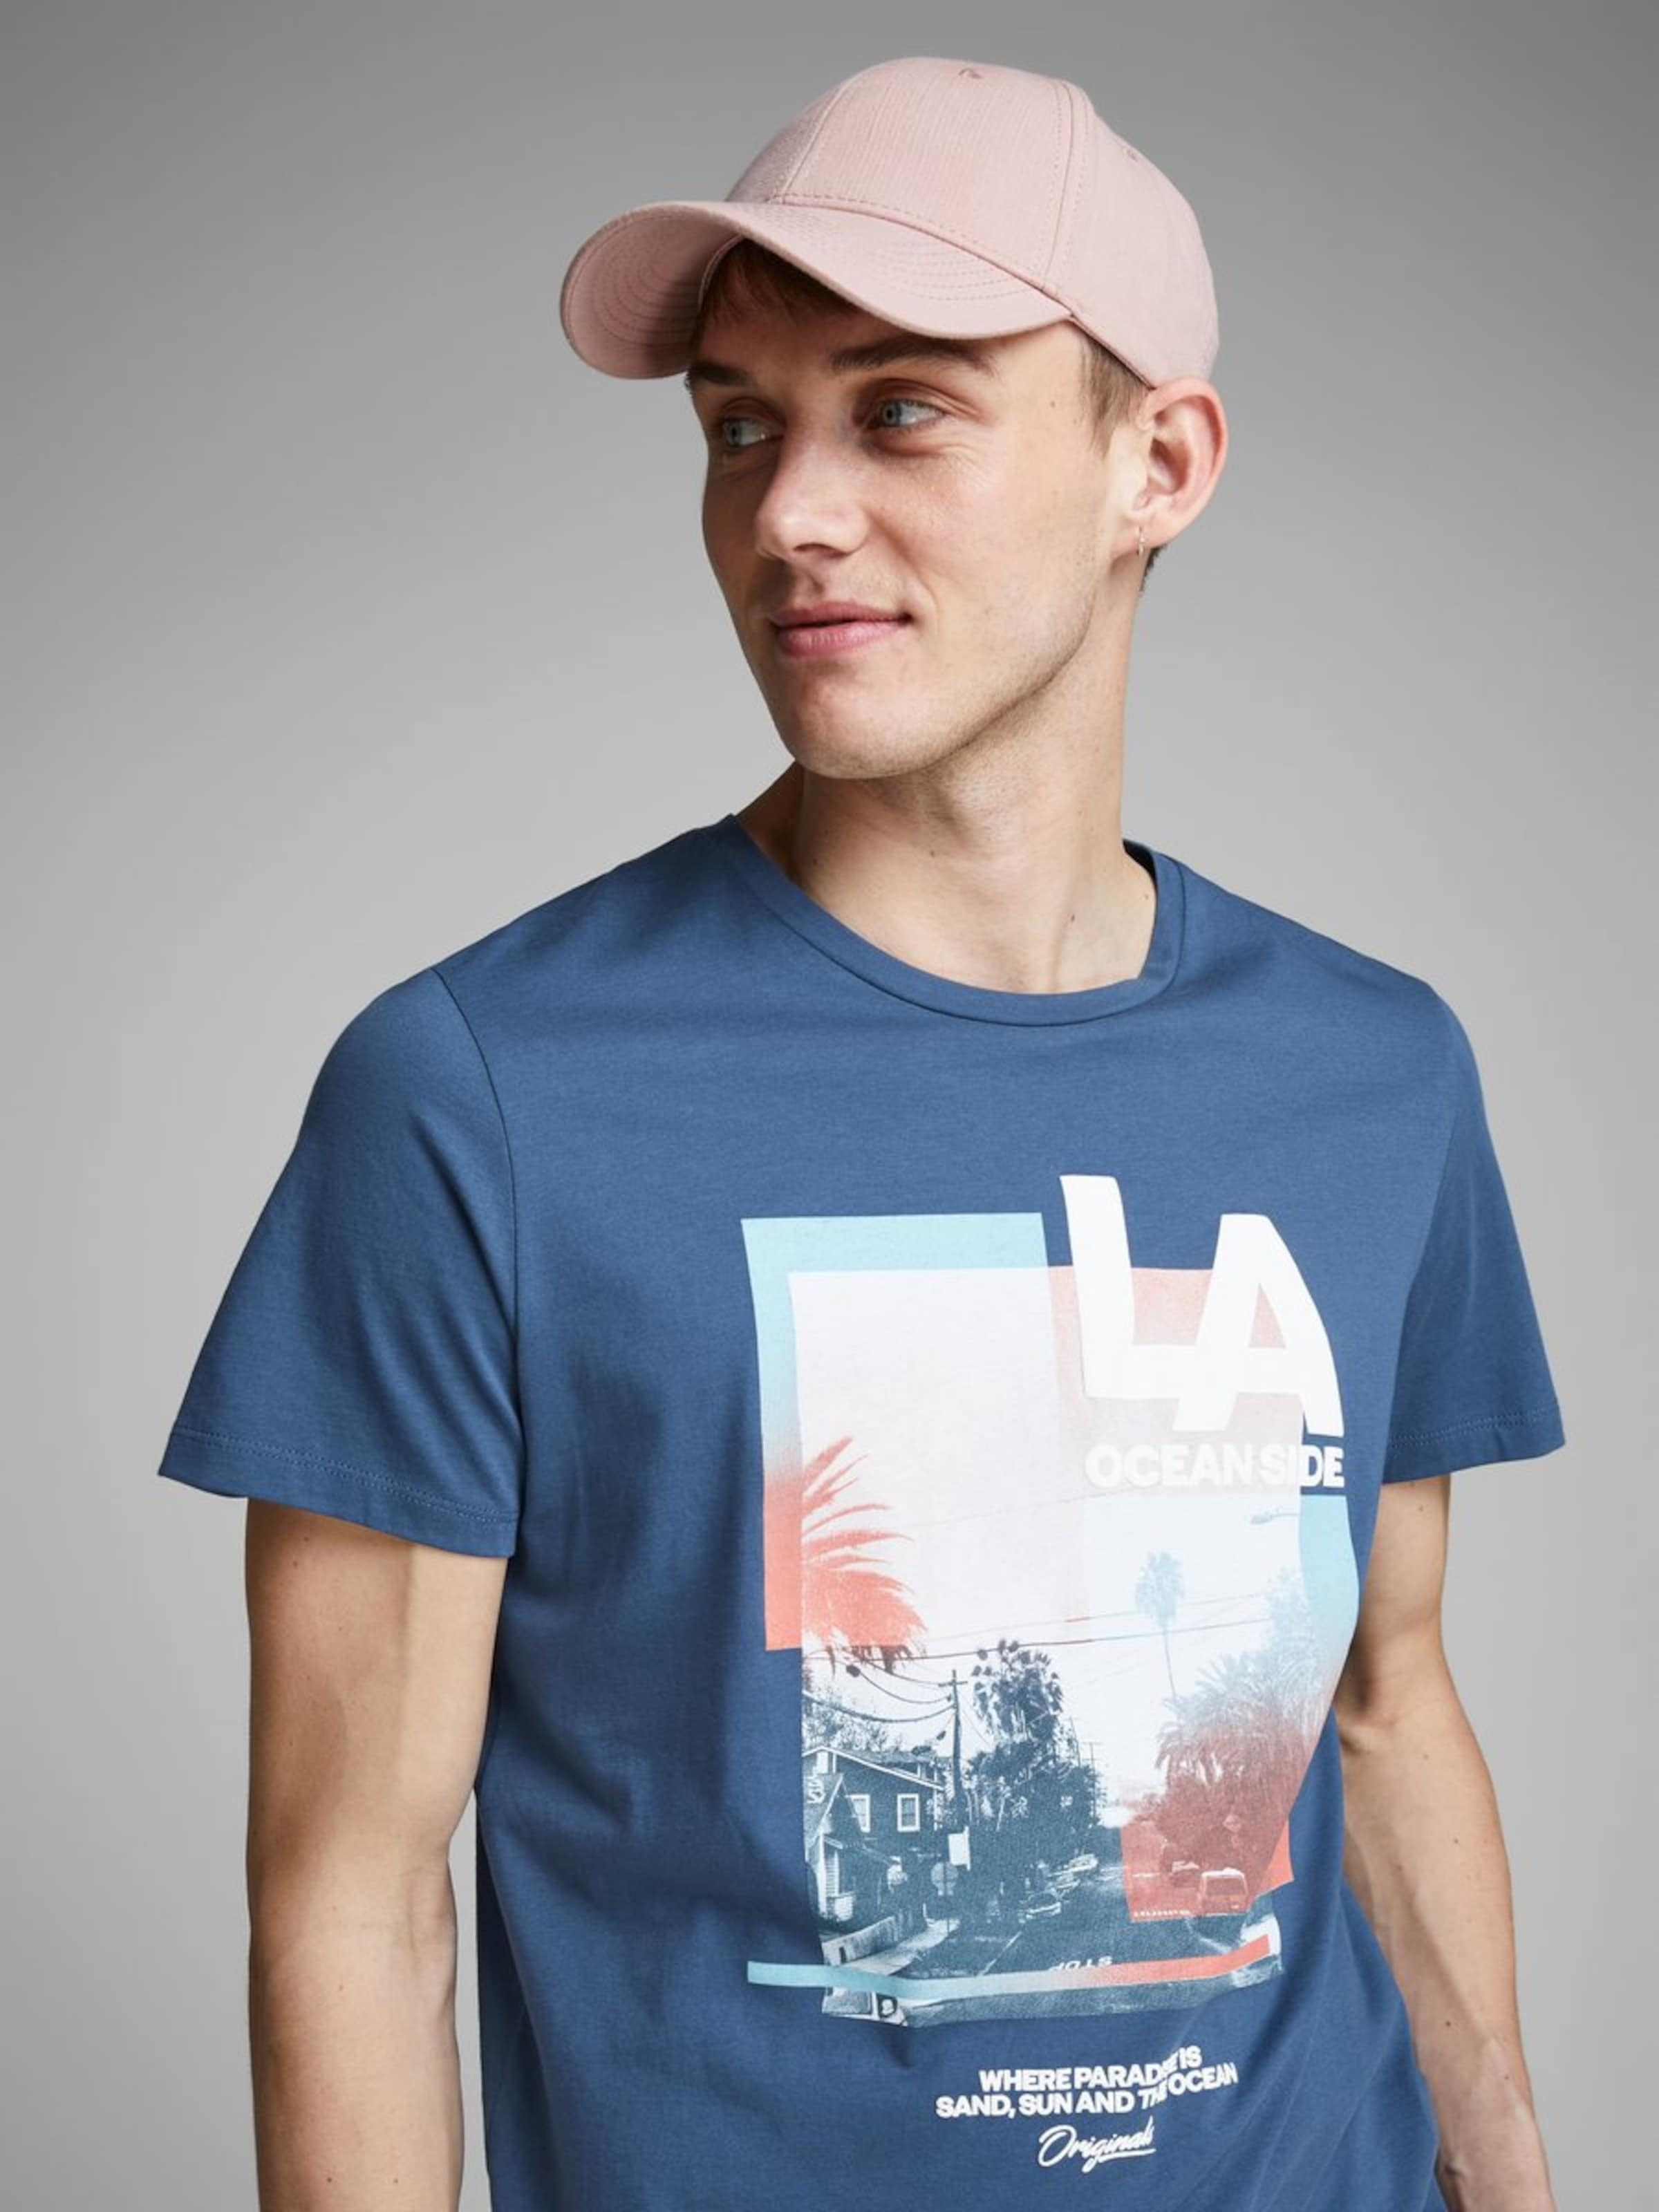 Jackamp; Mélange T En De CouleursBlanc Jones shirt WEDYb9e2IH